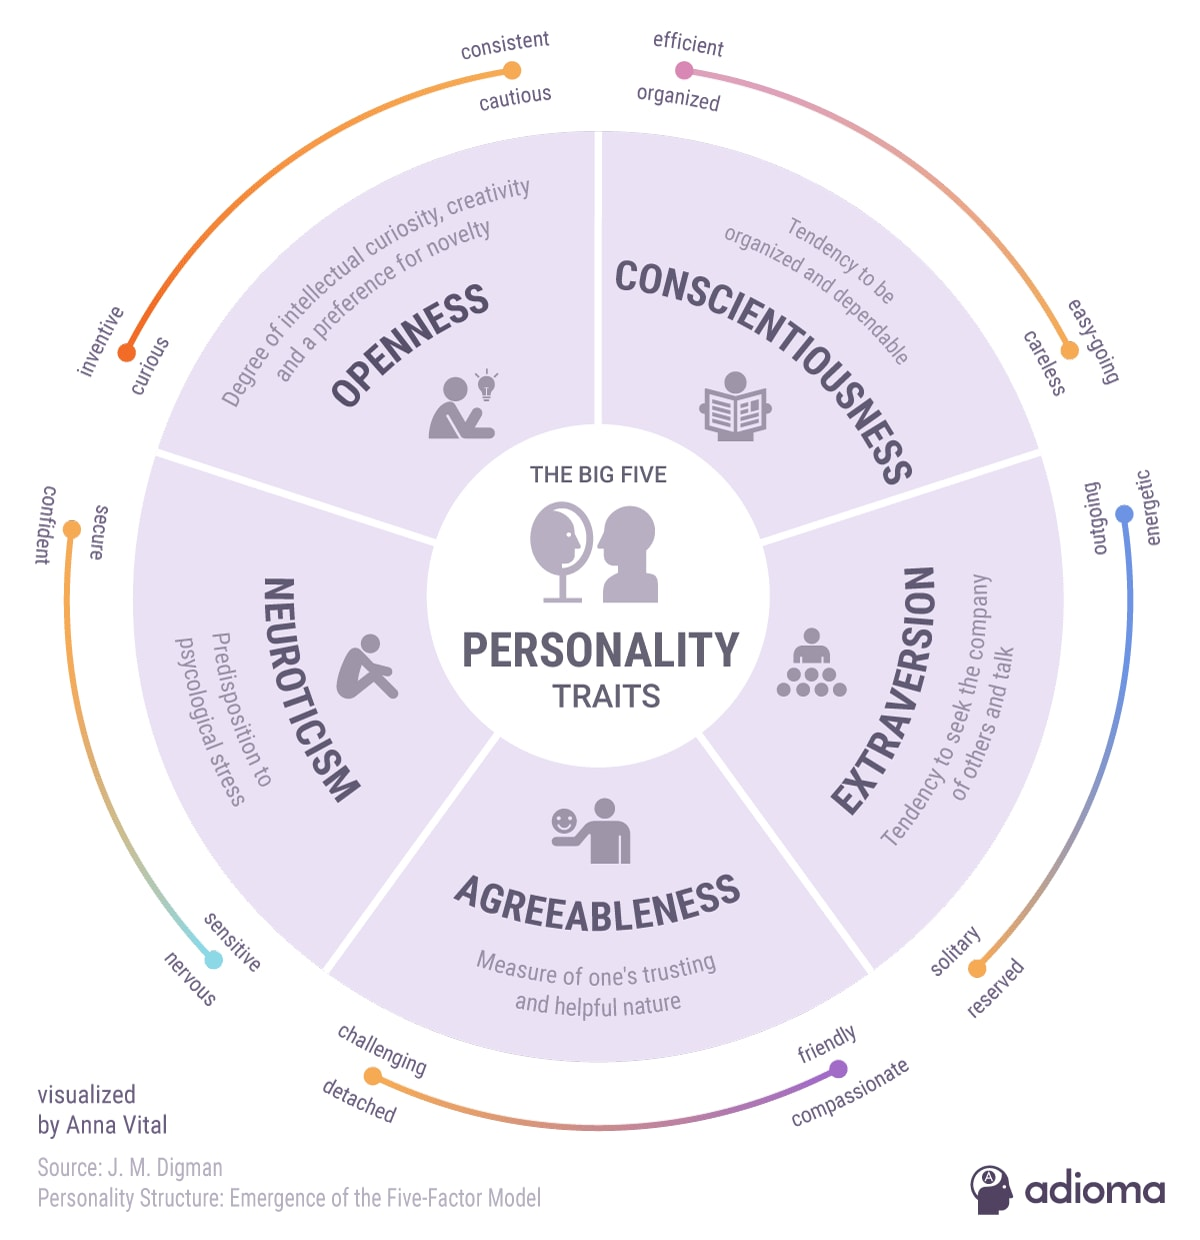 Big Five personality dimensions - Openess, conscientiousness, extraversion, agreeableness, neuroticism